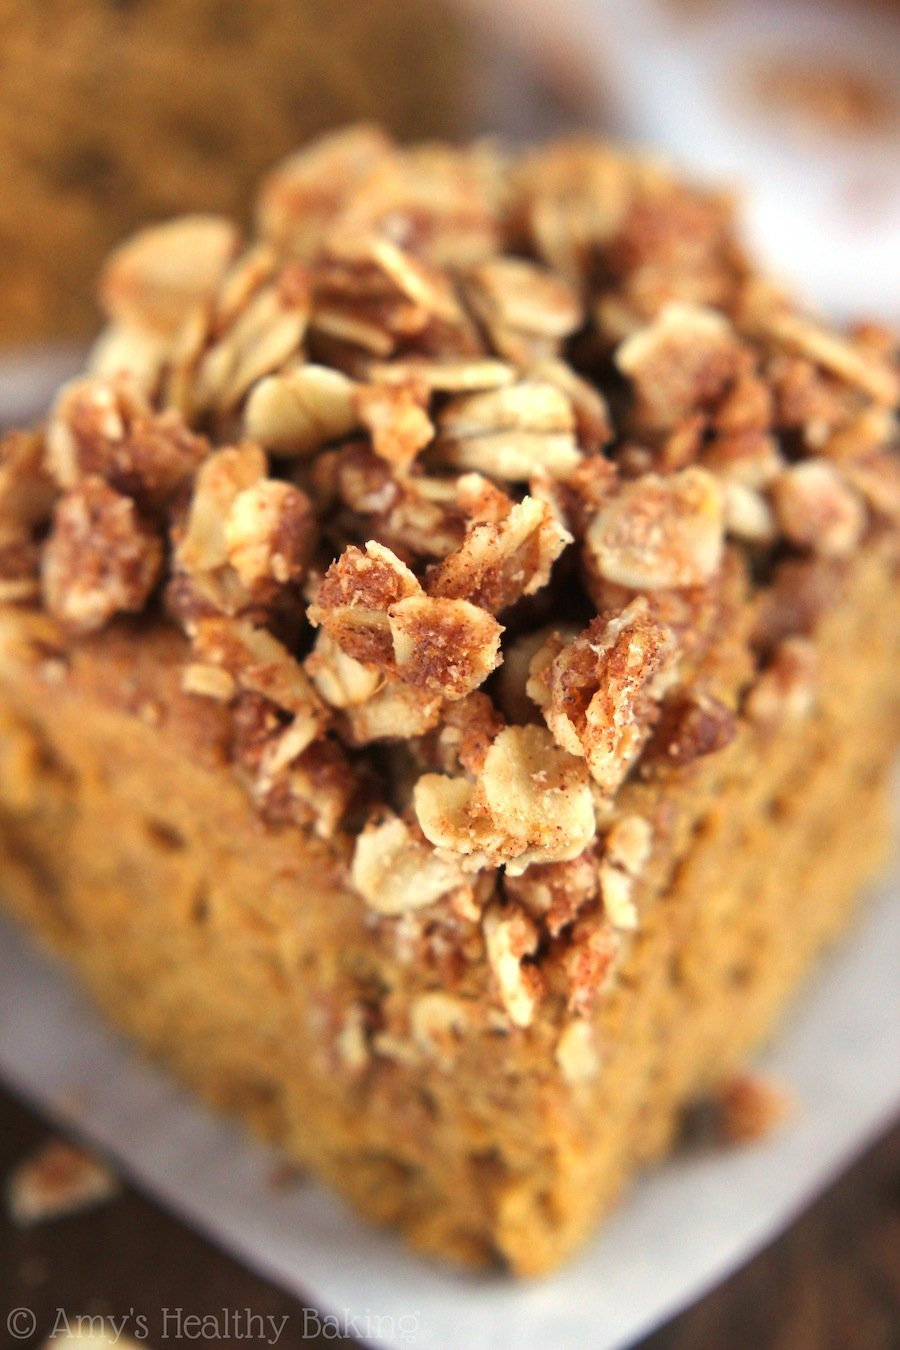 Pumpkin Streusel Coffee Cake - made in the slow cooker! That cinnamon topping is the BEST. You need to try this!